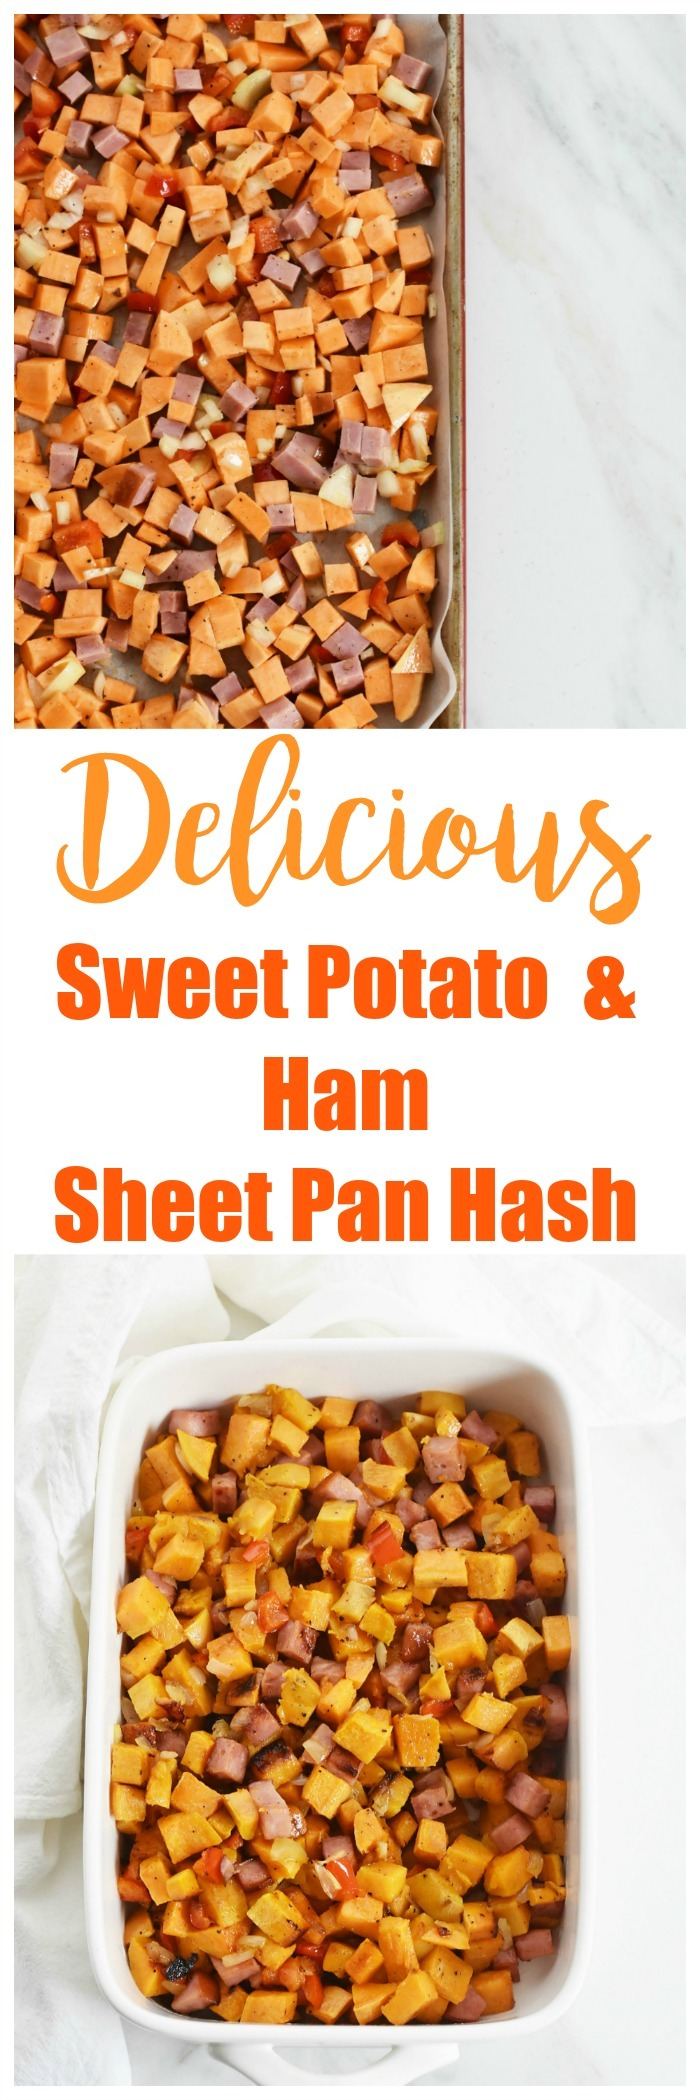 Delicious Sweet Potato & Ham Sheet Pan Hash